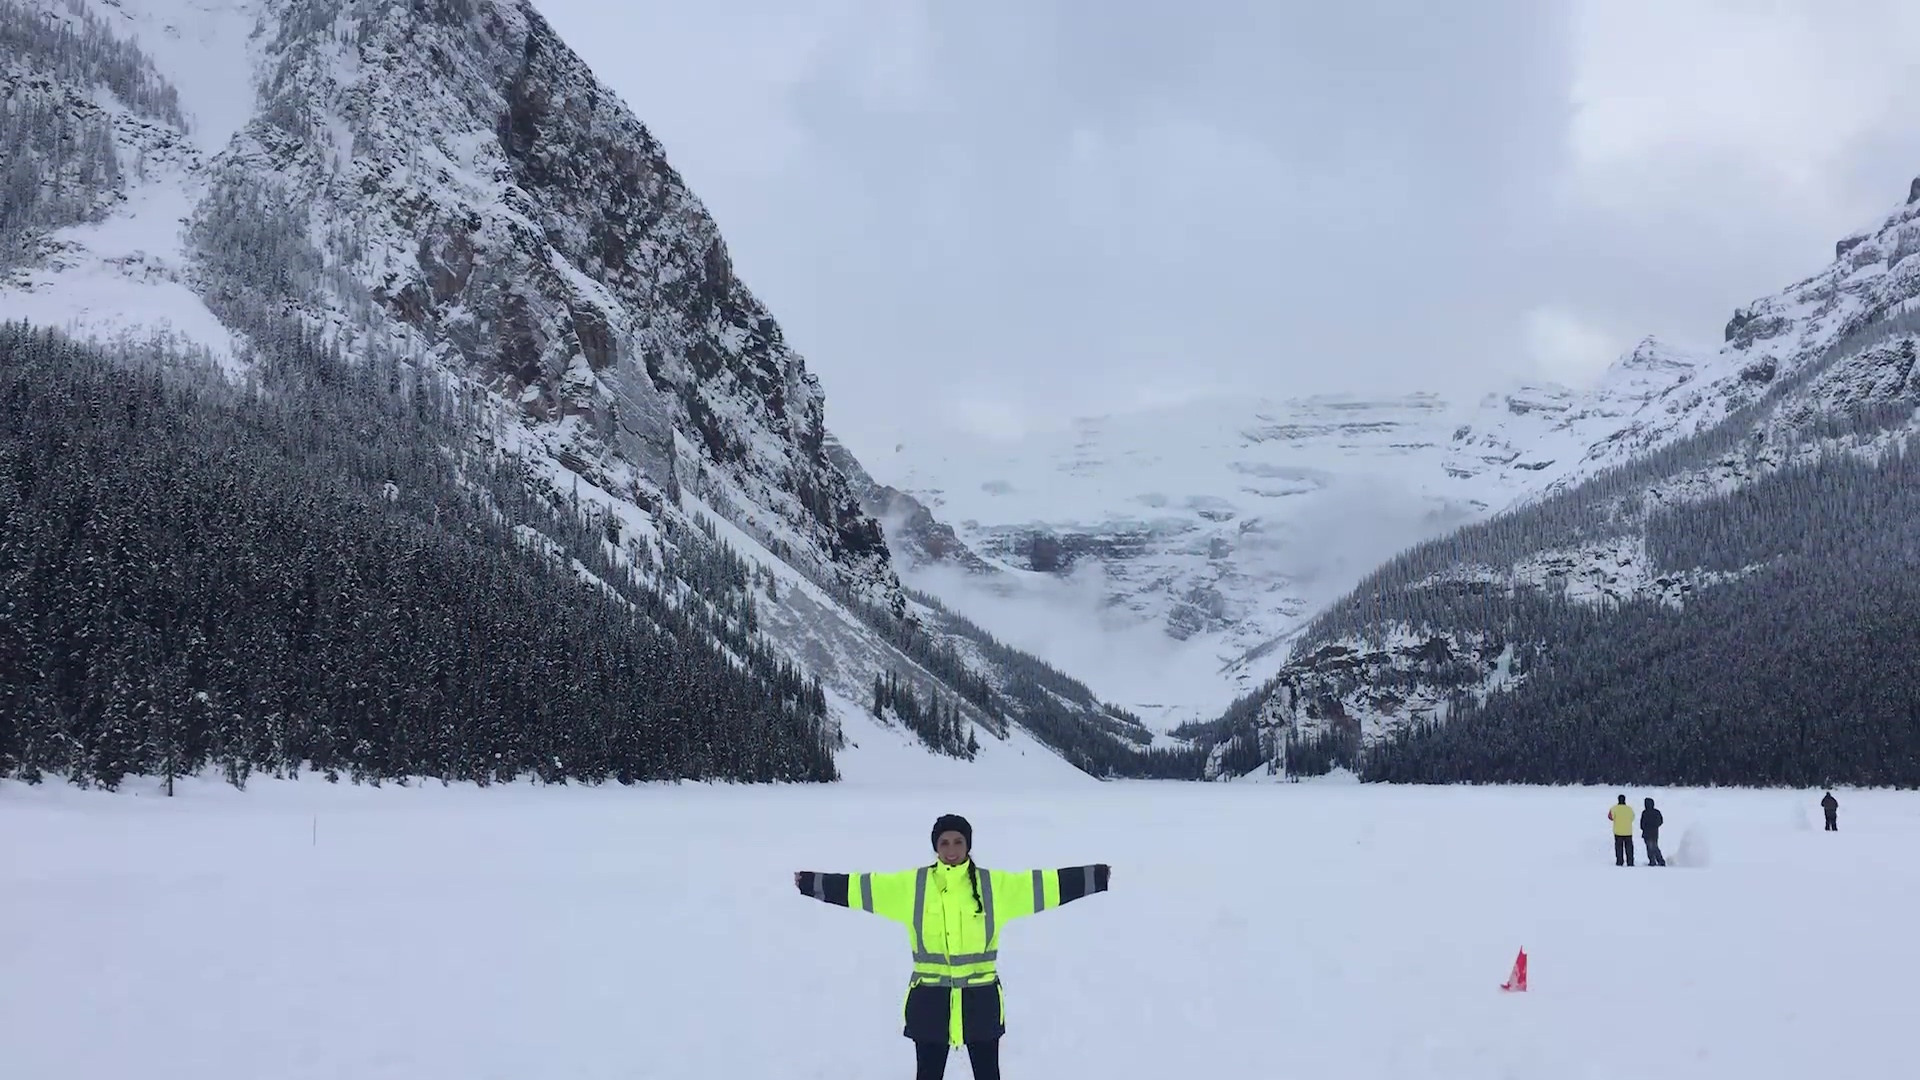 Damotech female engineer in front of mountains and snow